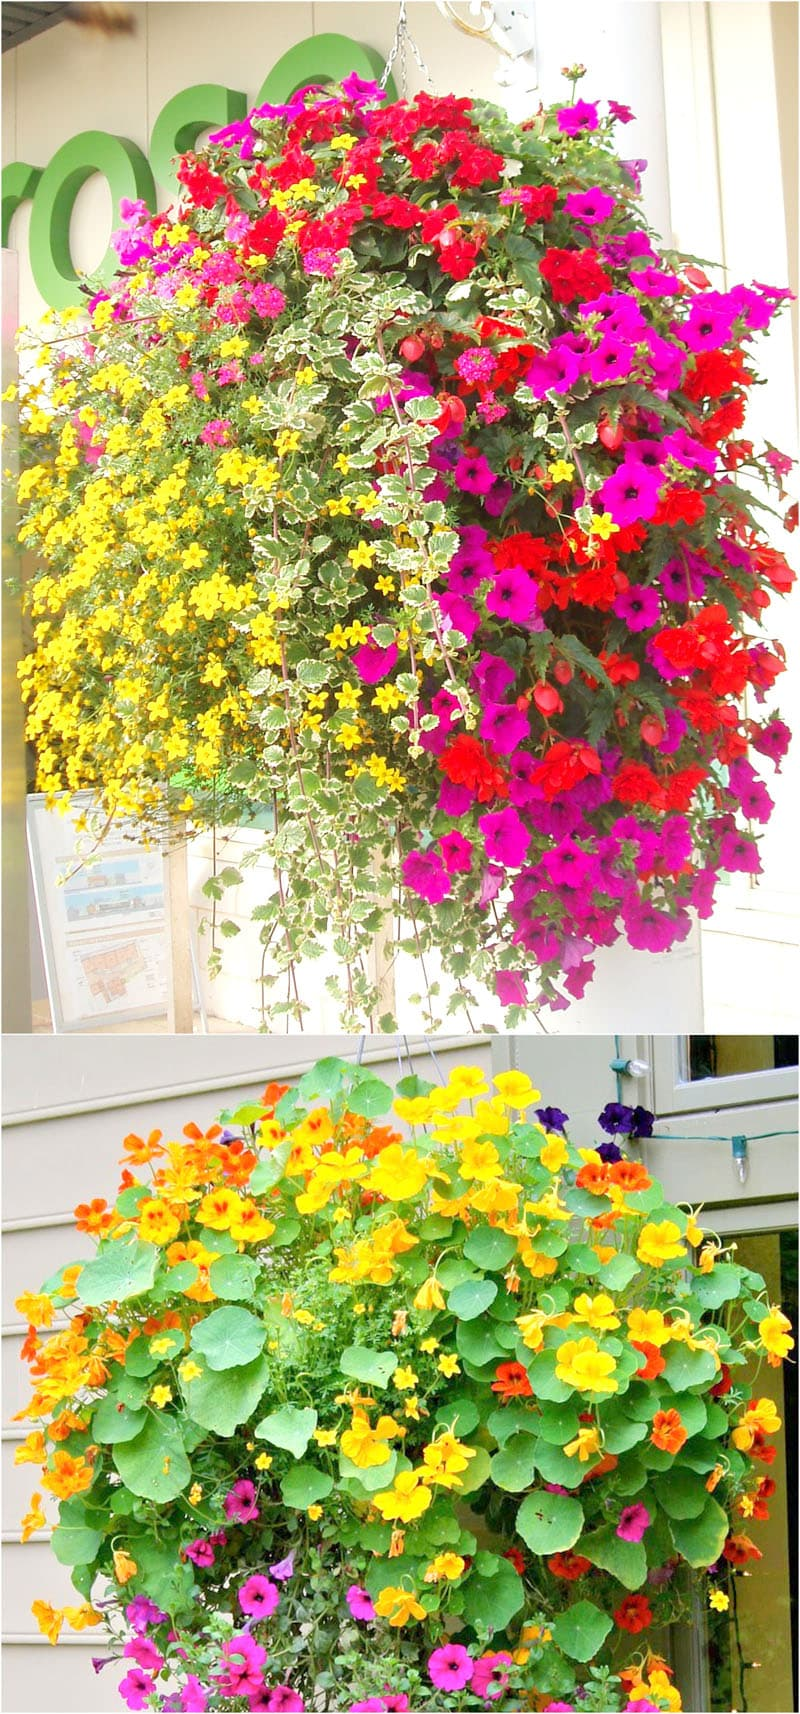 Youtube Hanging Flower Baskets : How to plant beautiful flower hanging baskets best